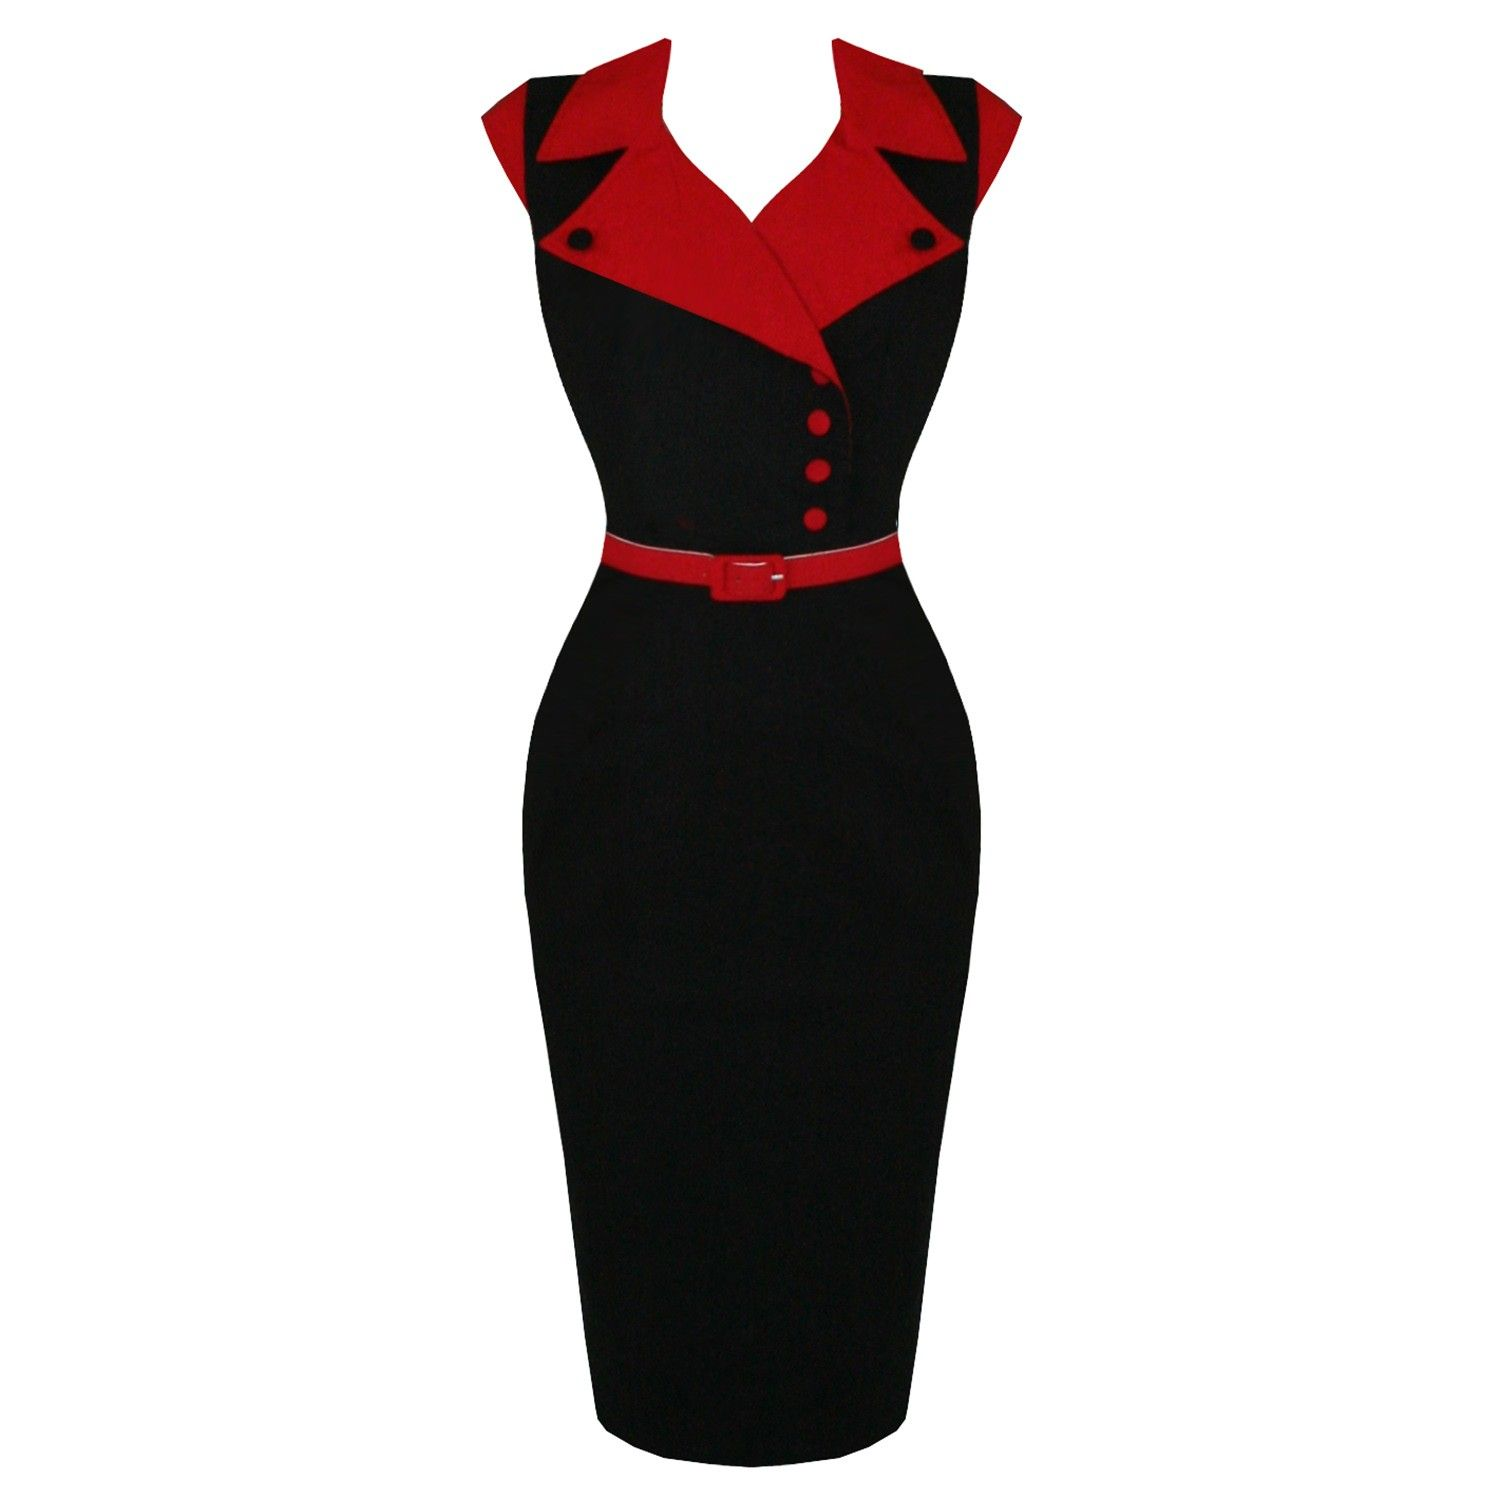 Red pencil dress - Google Search   Fashion,Just My Style ...